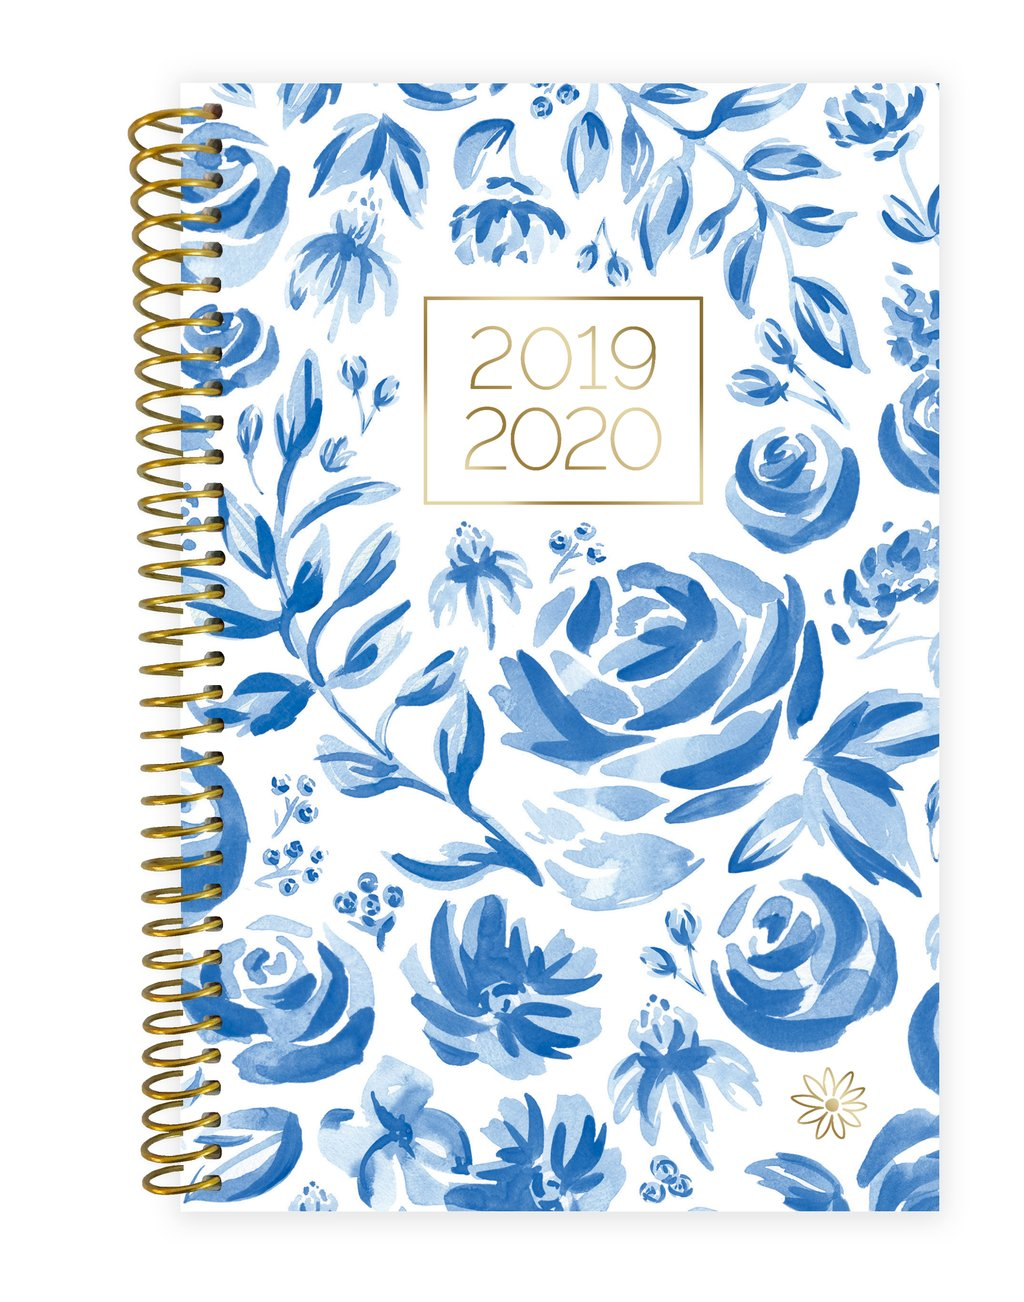 Blue & White Floral - 2020 Soft Cover Planner